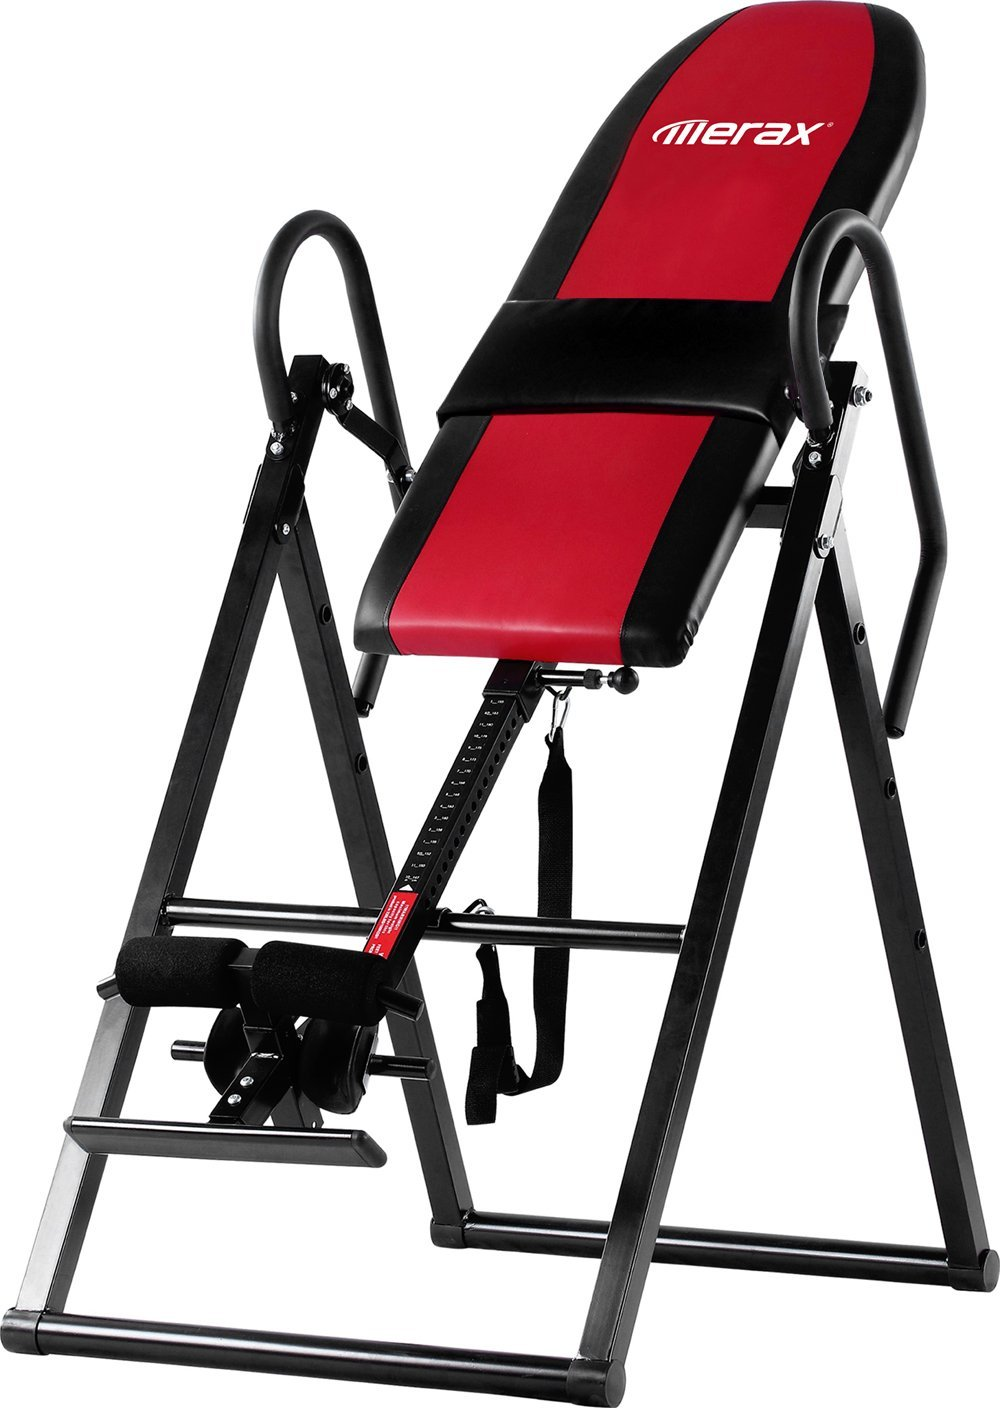 Merax Inversion Therapy Table with Comfort Foam Backrest